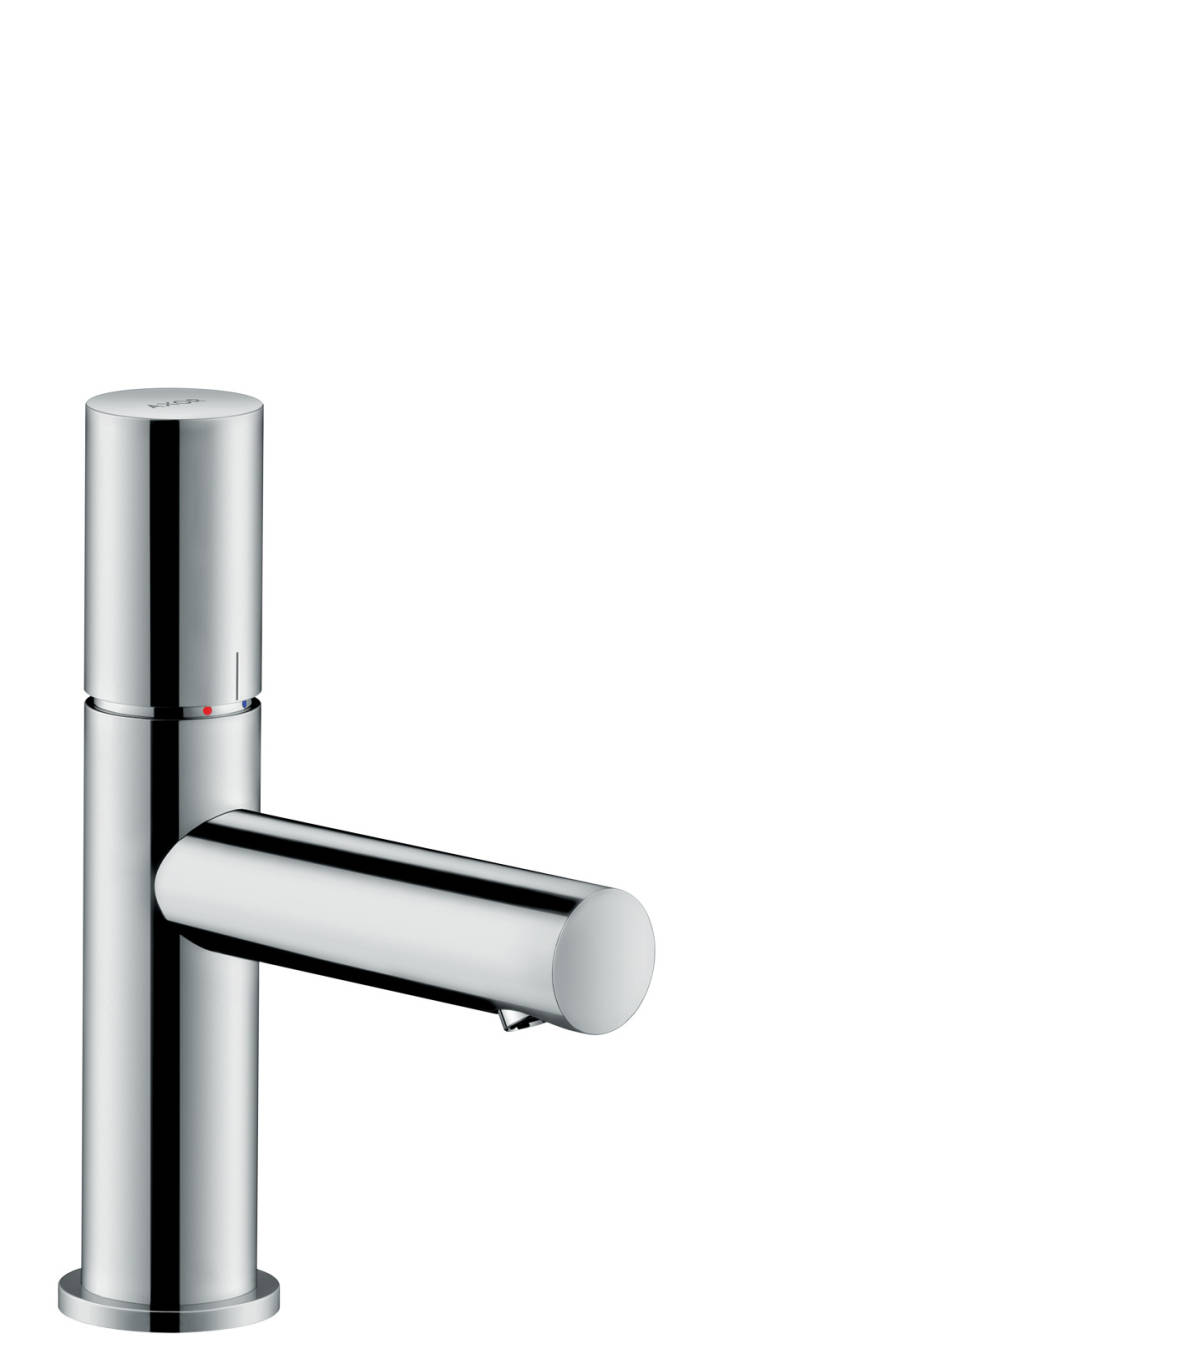 Single lever basin mixer 80 with zero handle and waste set, Chrome, 45005000